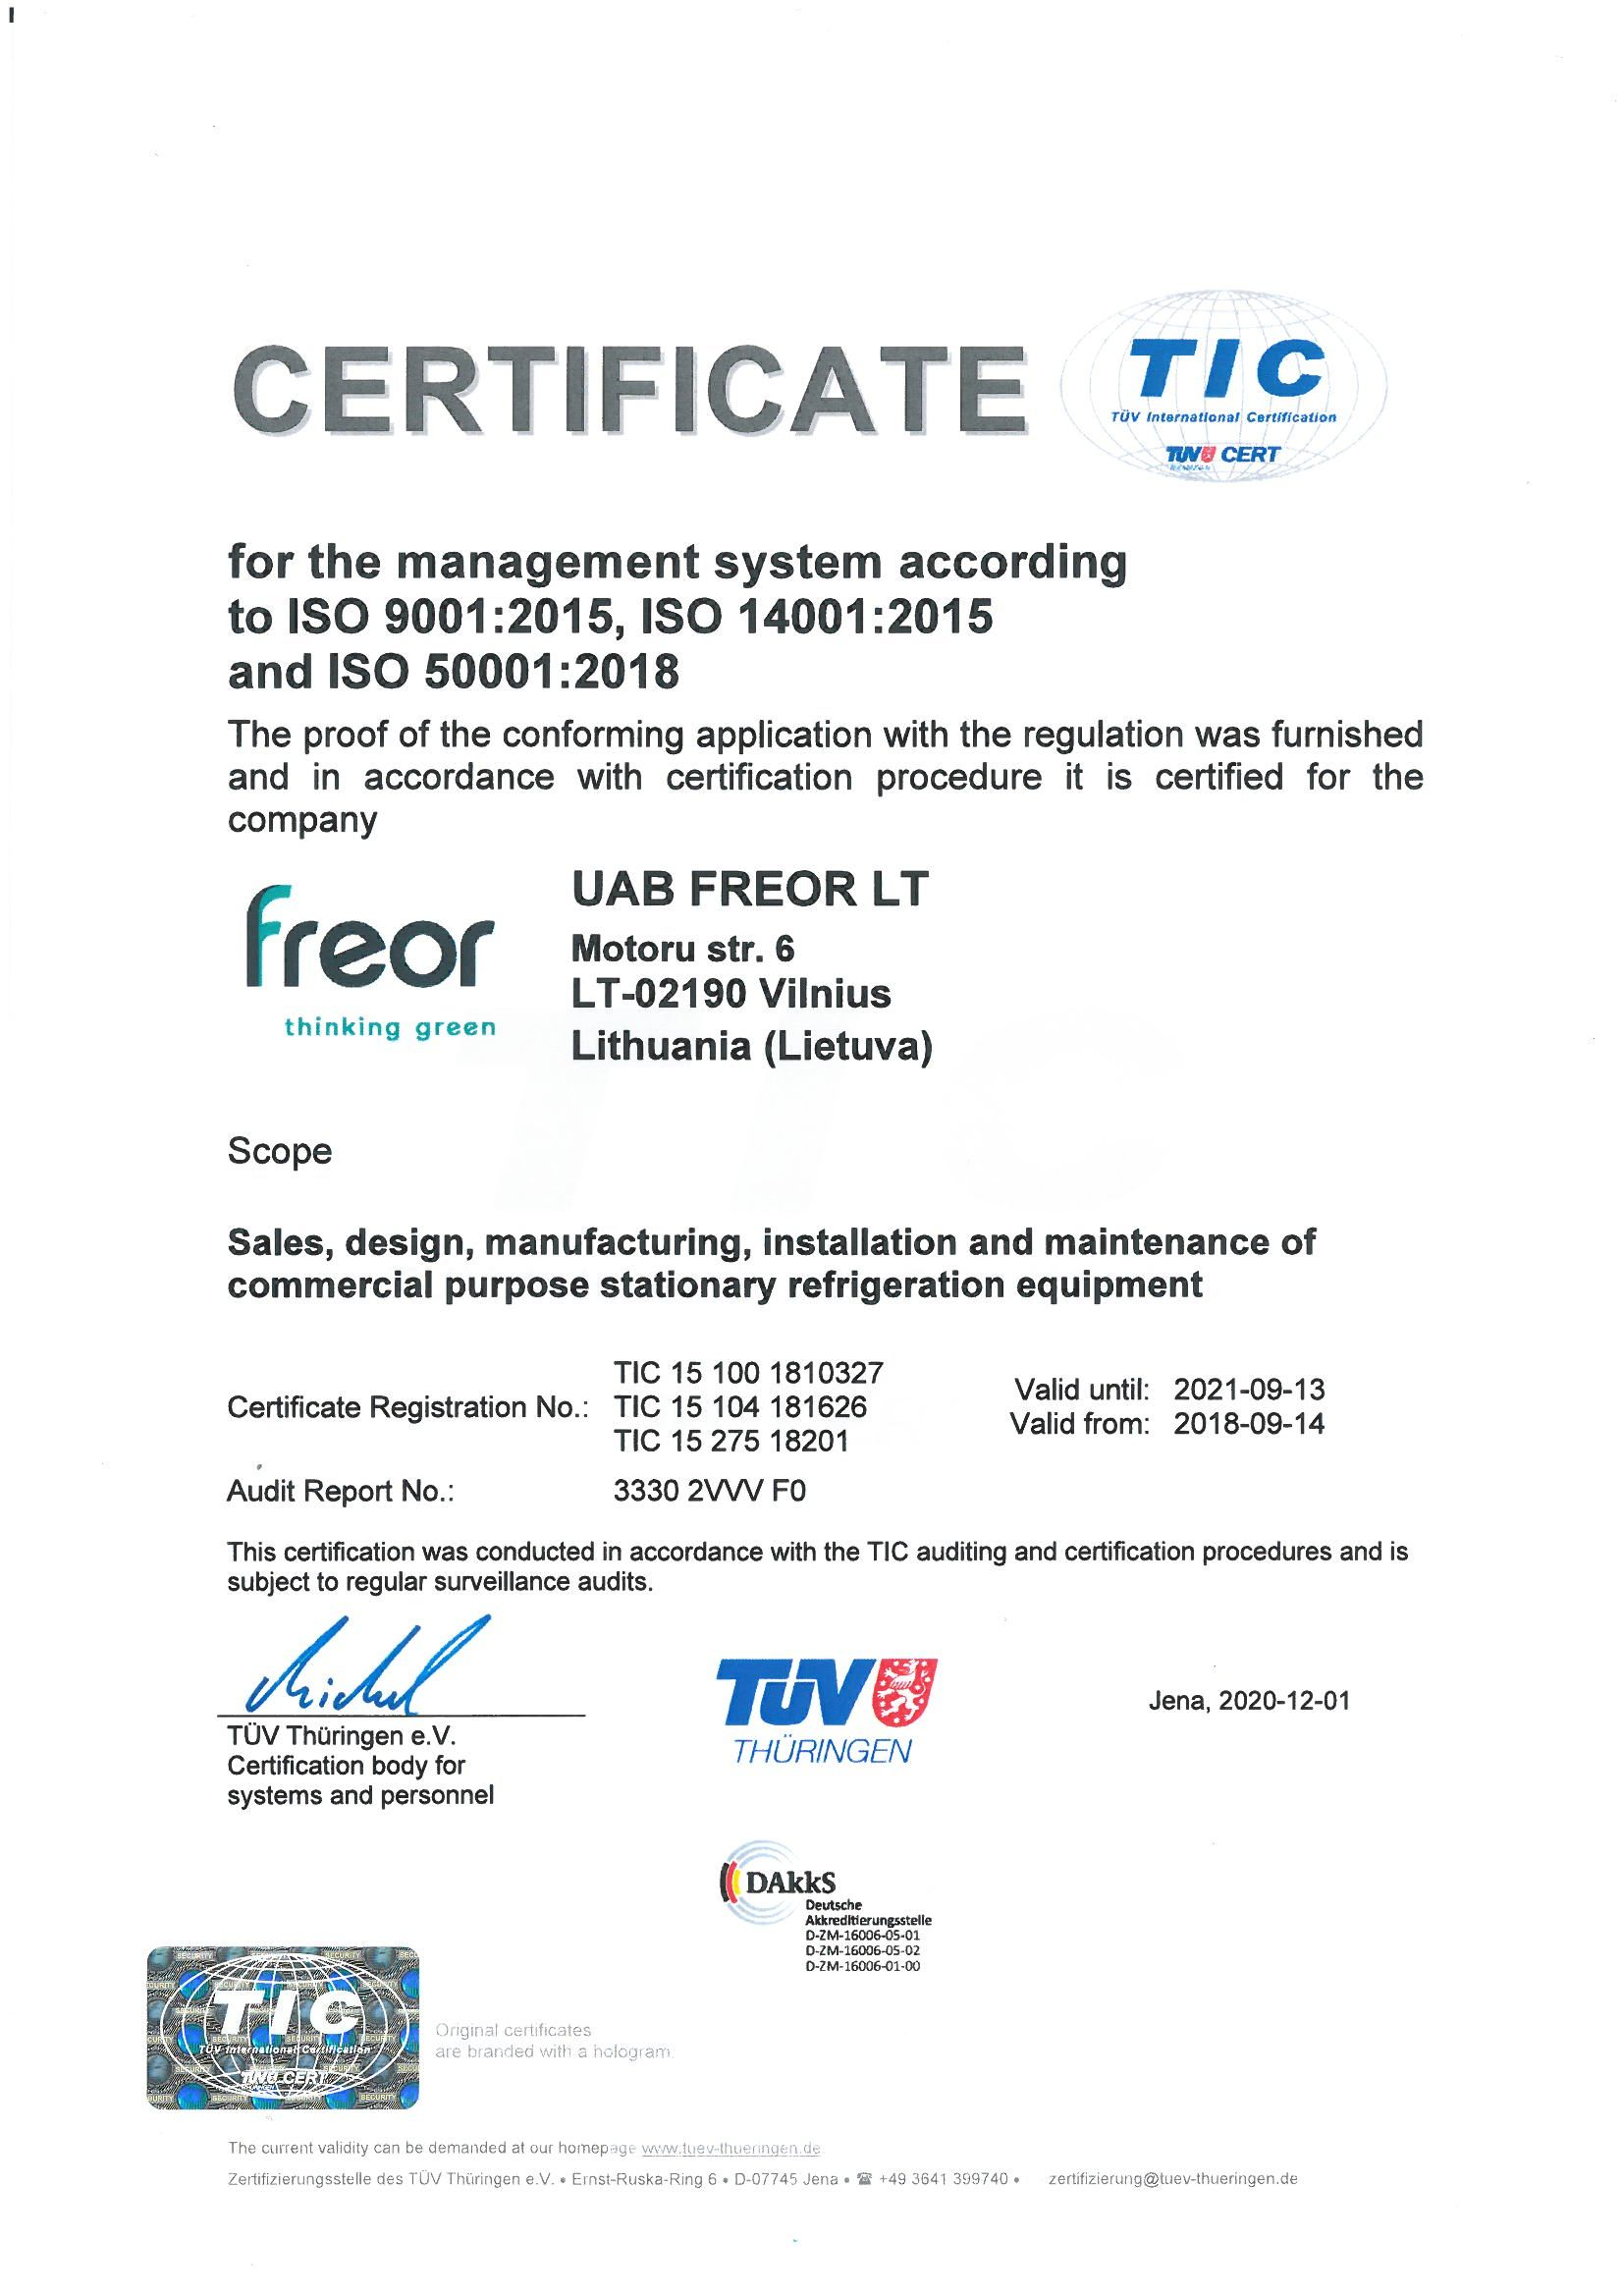 FREOR ISO certificate_TUV (1)